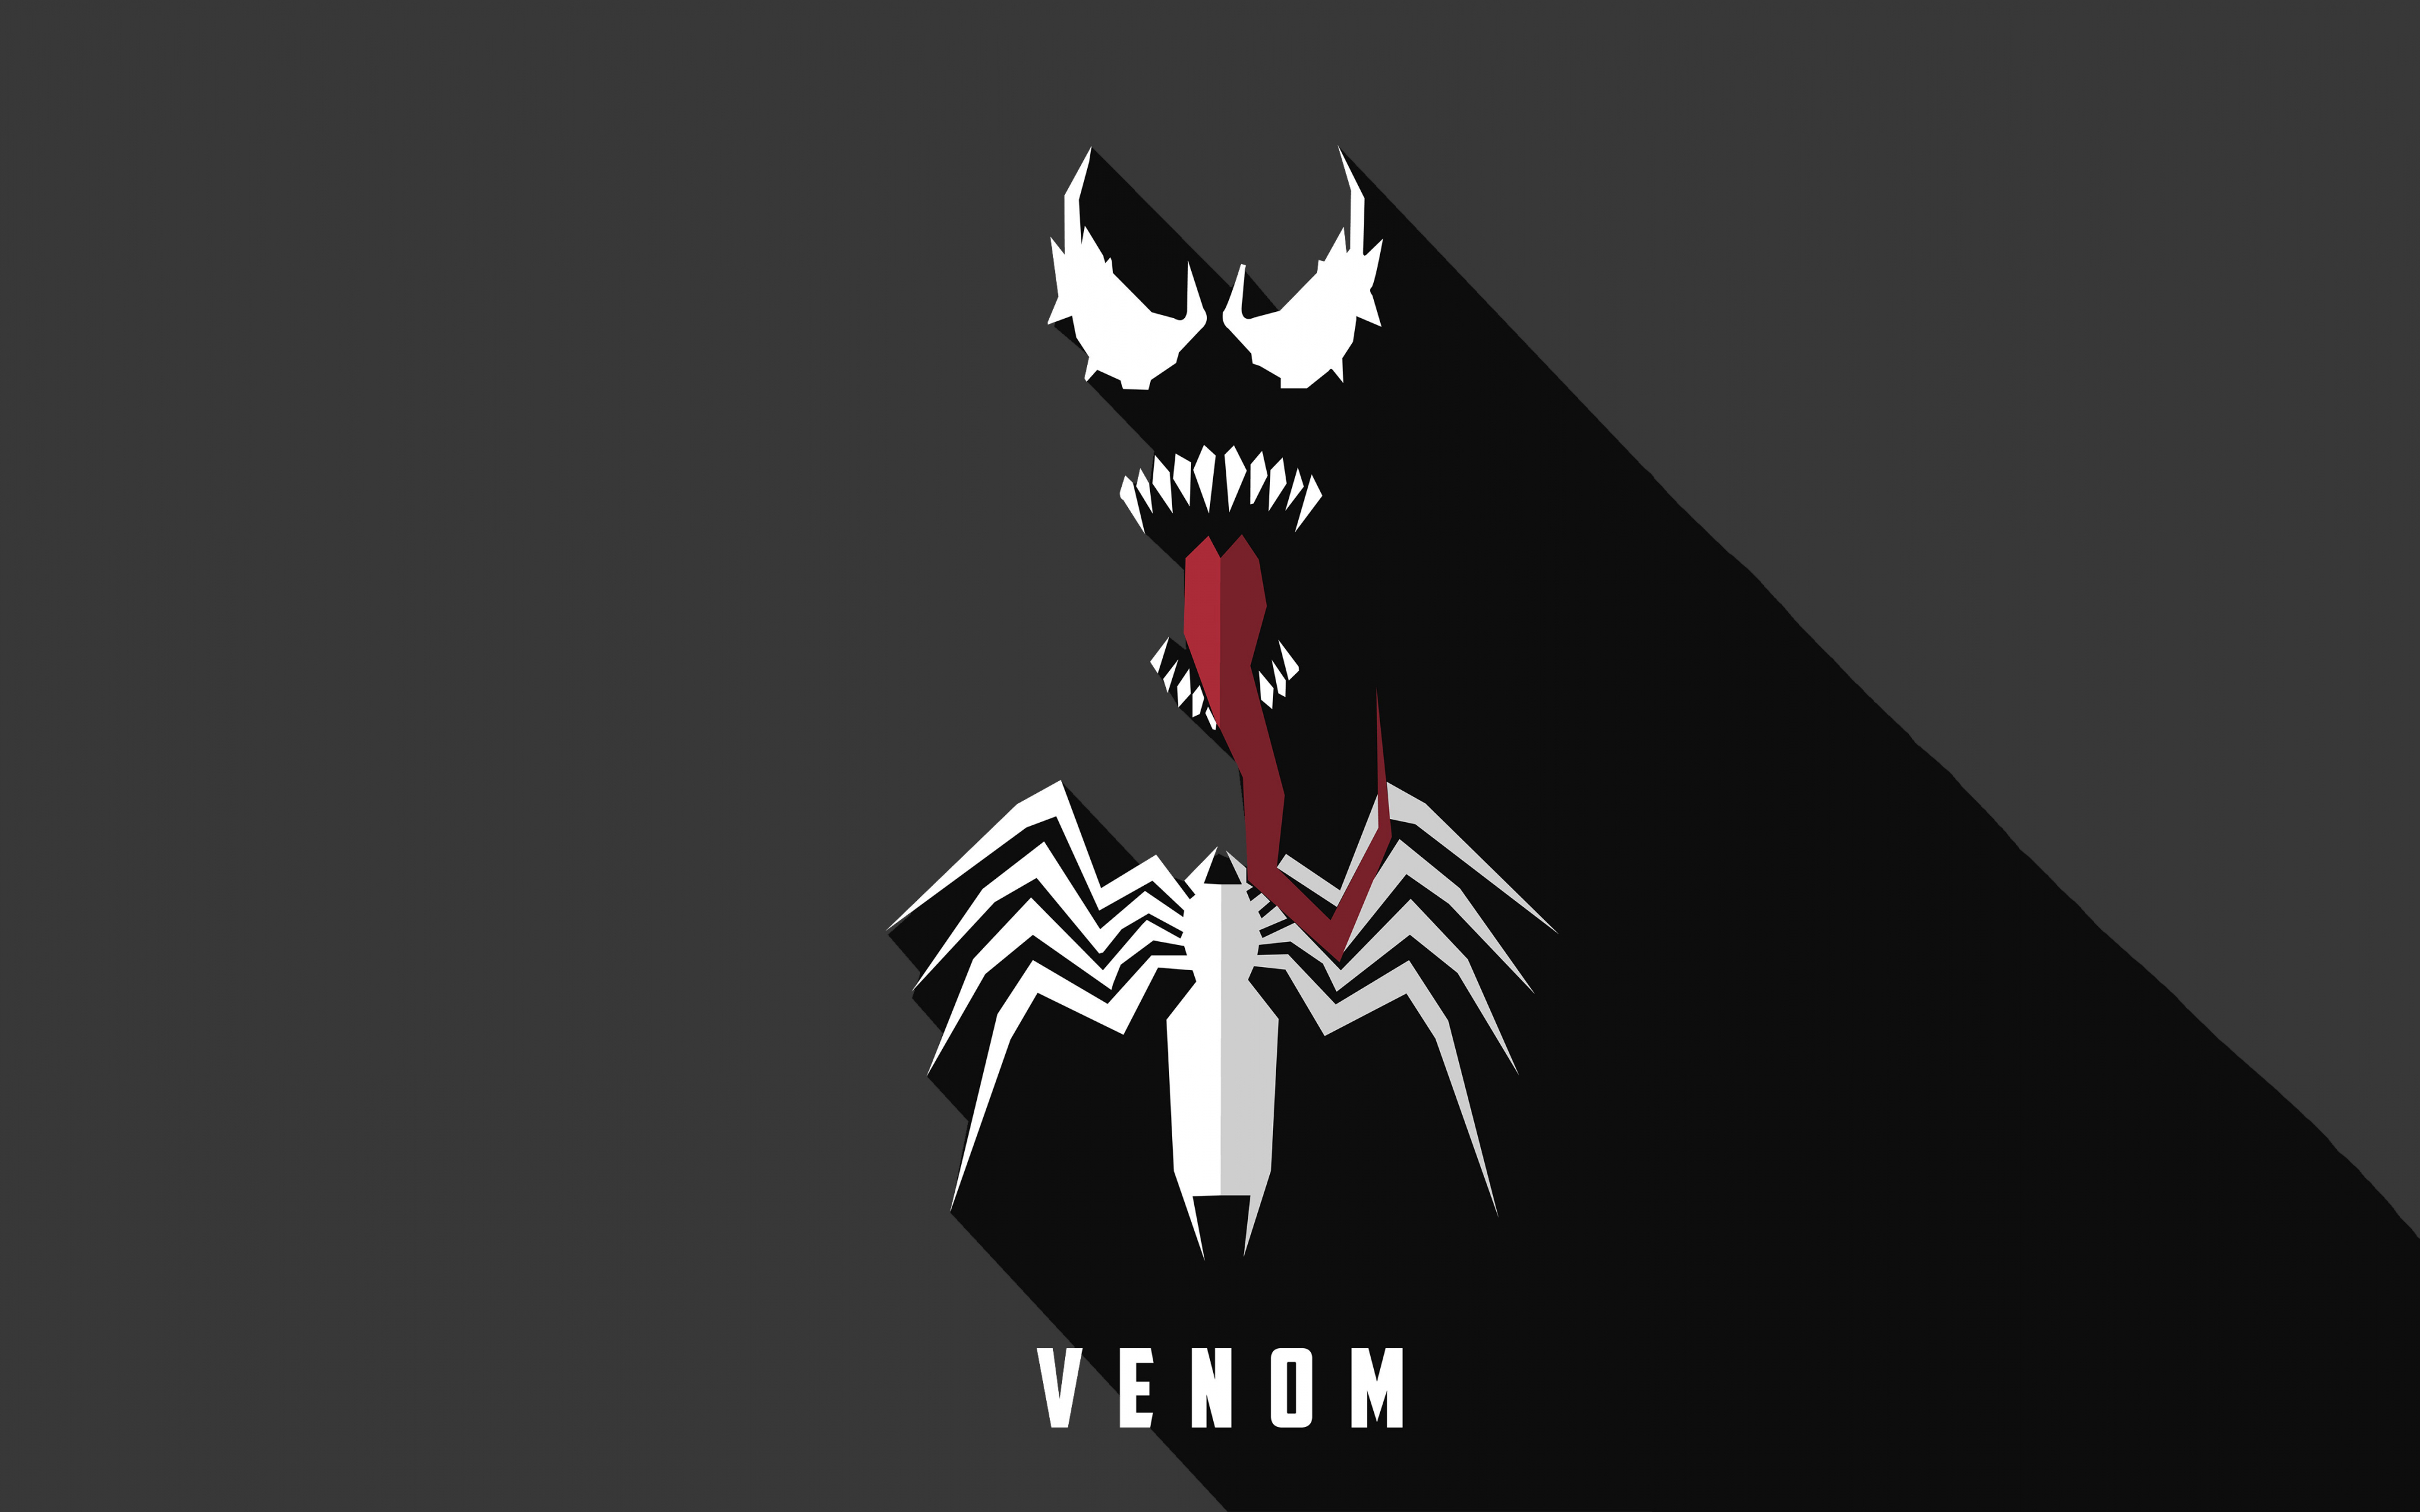 Download 3840x2400 wallpaper venom artwork supervillain 4k ultra hd 16 10 widescreen - 1366x768 is 720p or 1080p ...